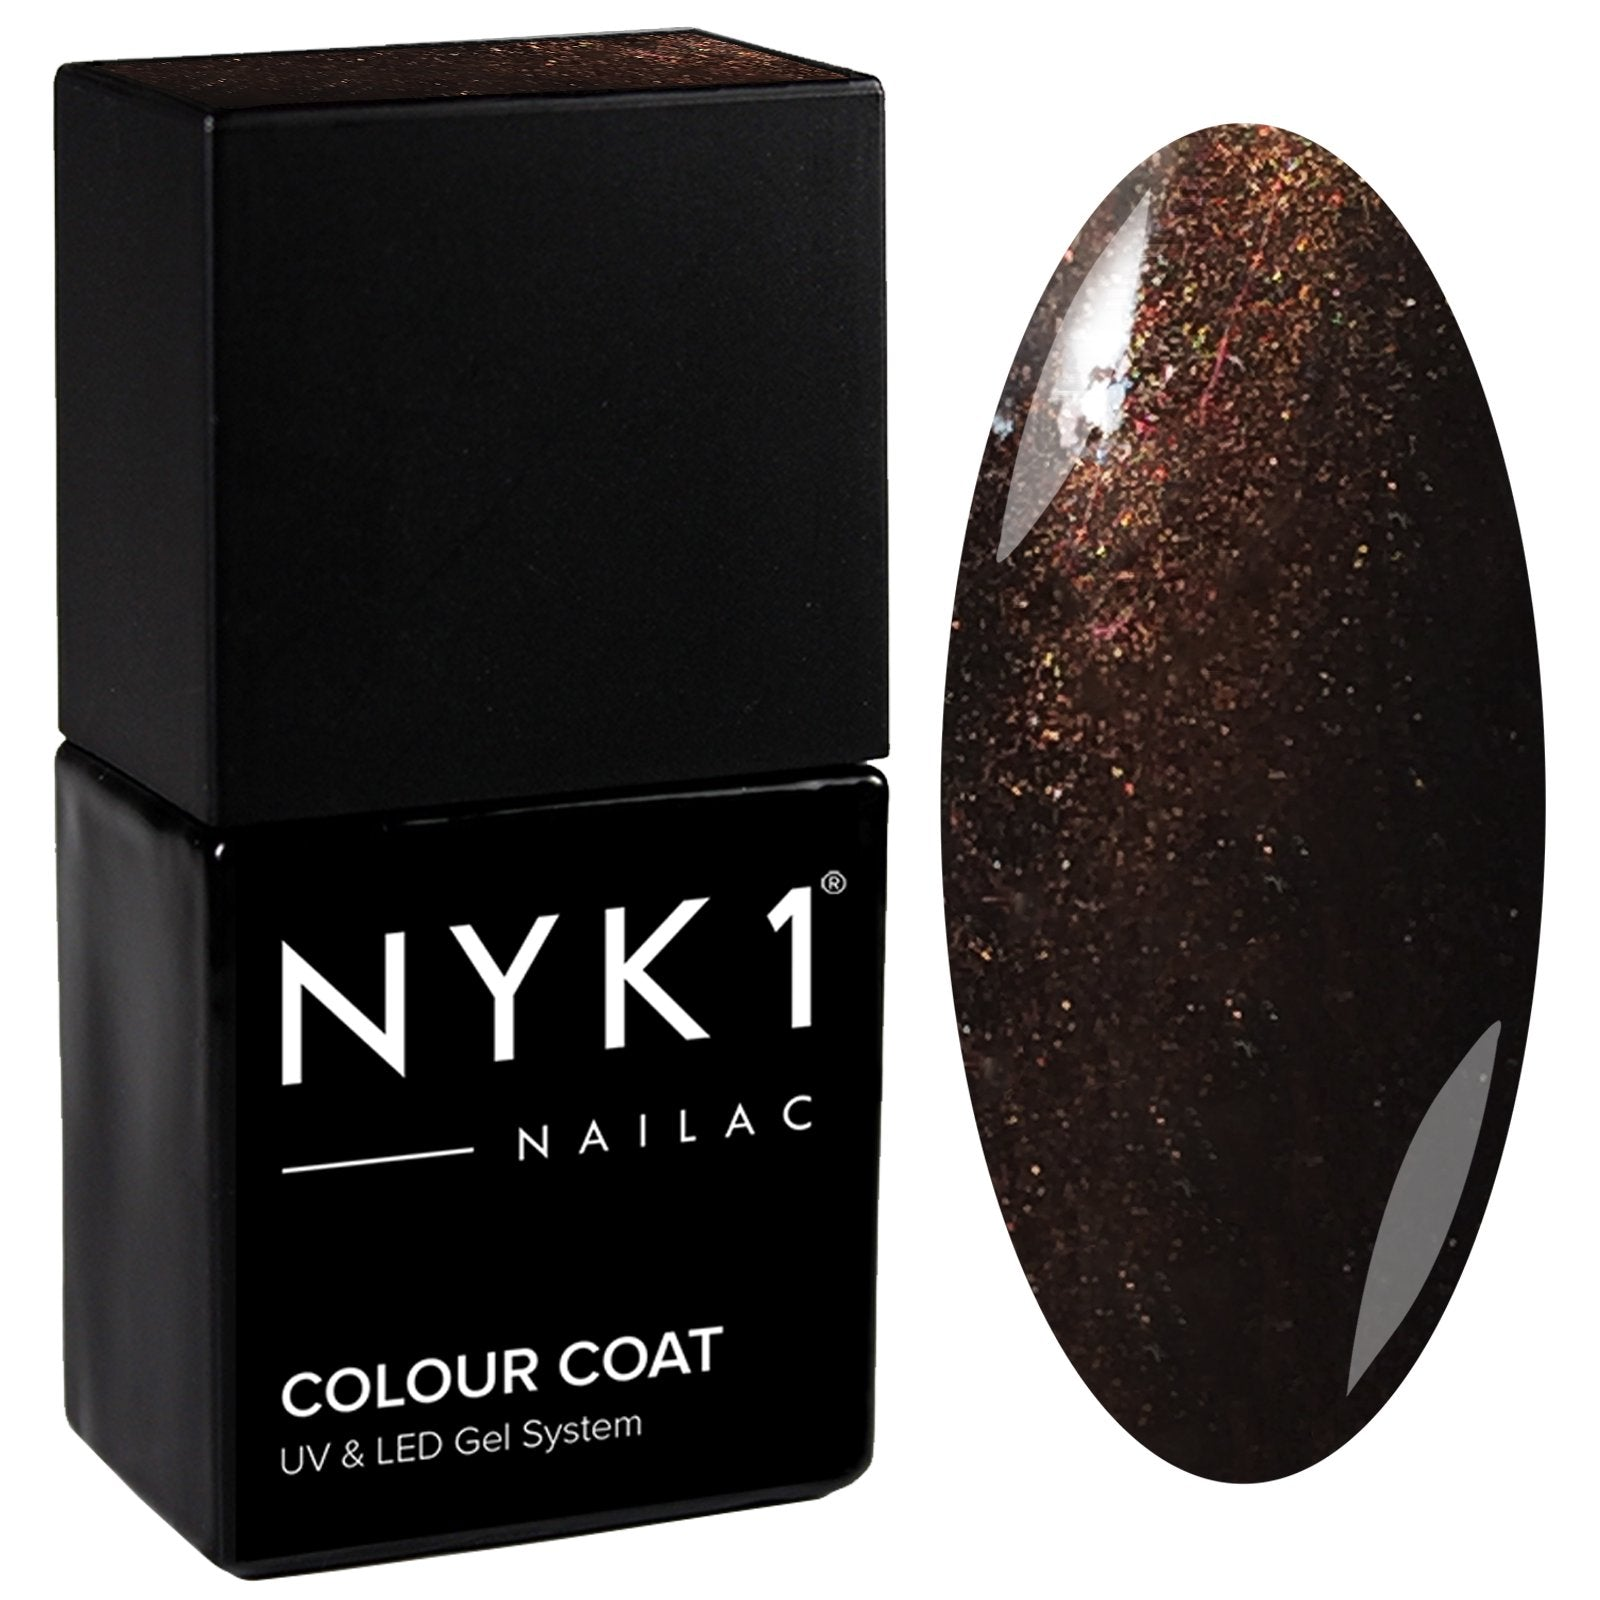 NYK1 Nailac Fig Brown Glitter Sparkle Gel Nail Polish